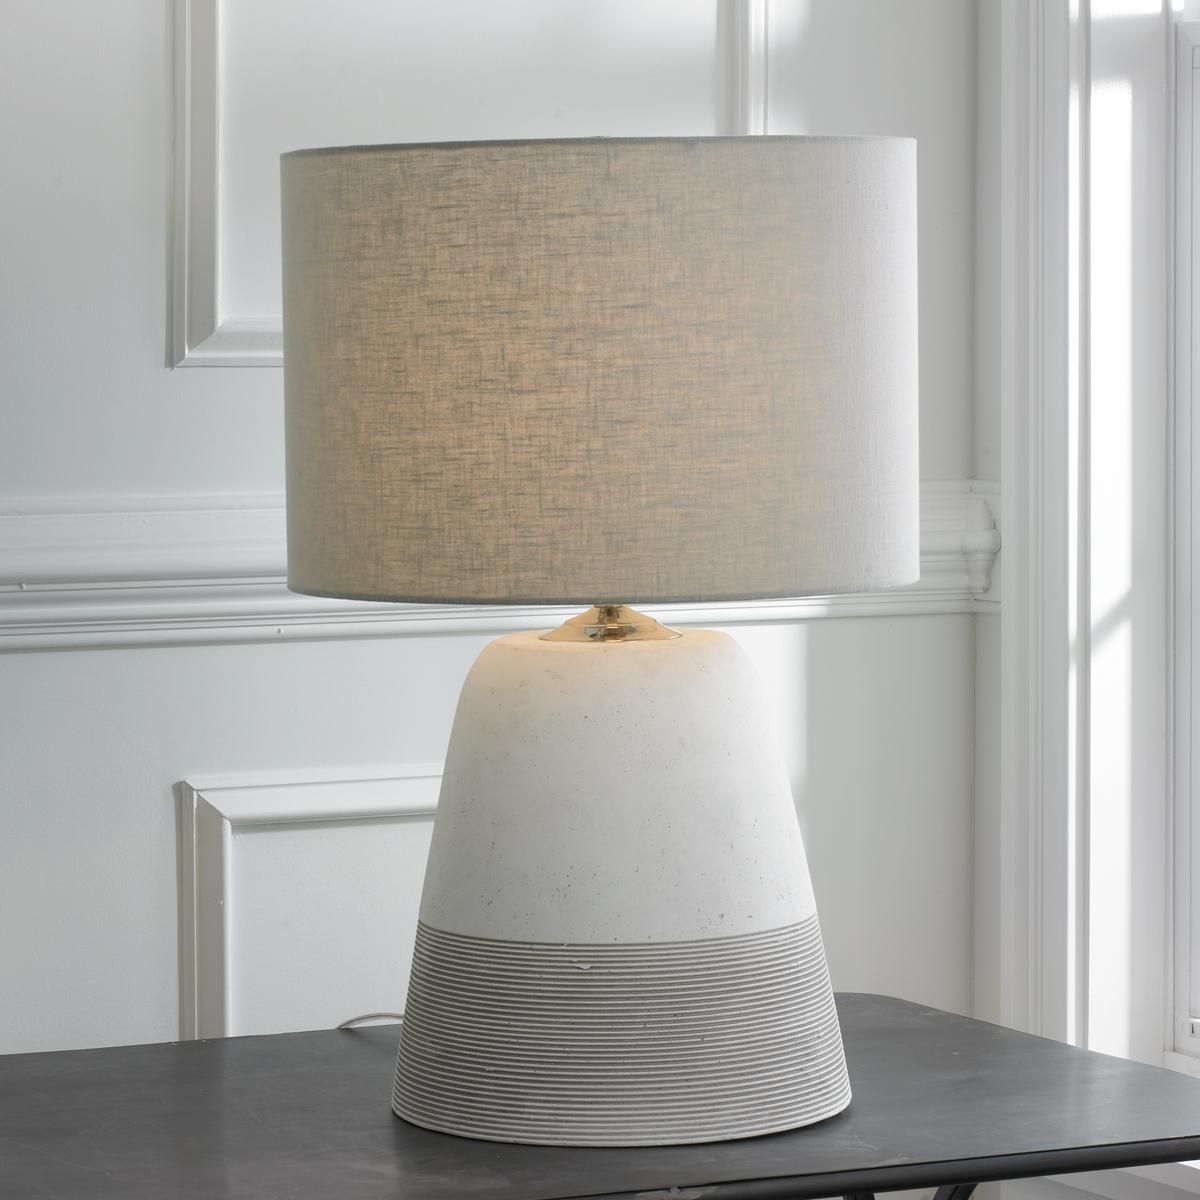 Grooved Concrete Table Lamp Small Concrete Table Lamp Contemporary Table Lamps Table Lamp Design